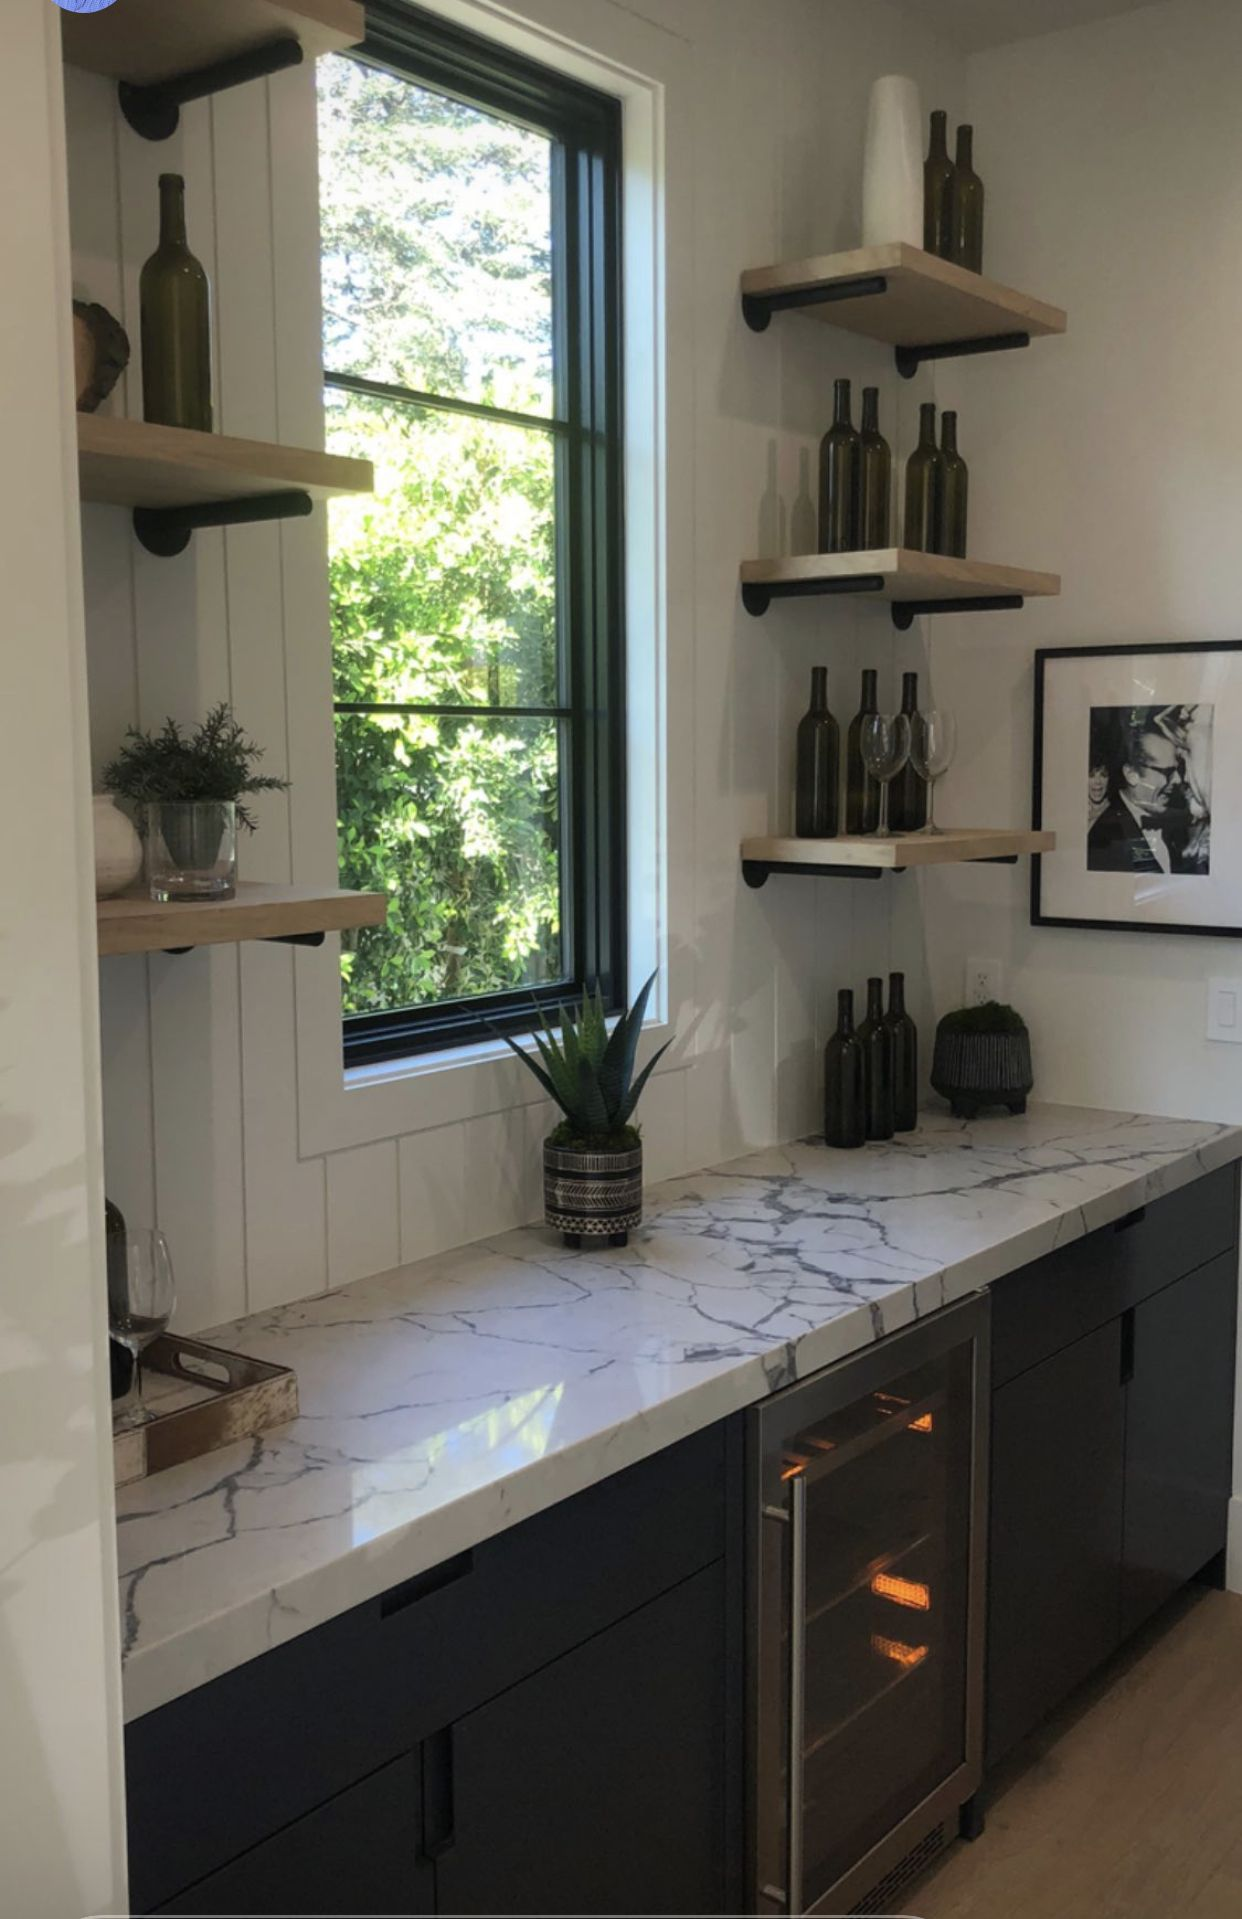 Pin by Anna Mapes on kitchen in 2020 Home decor